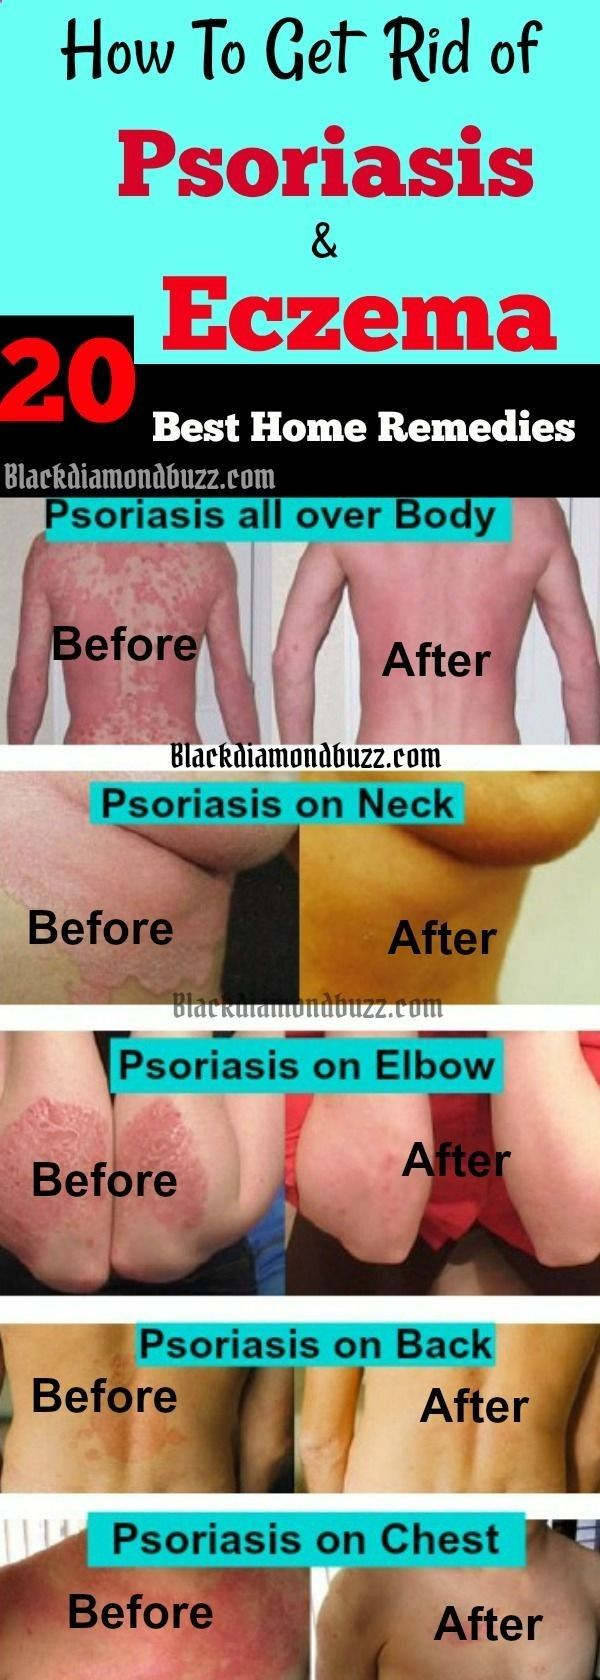 how to get rid of eczema fast